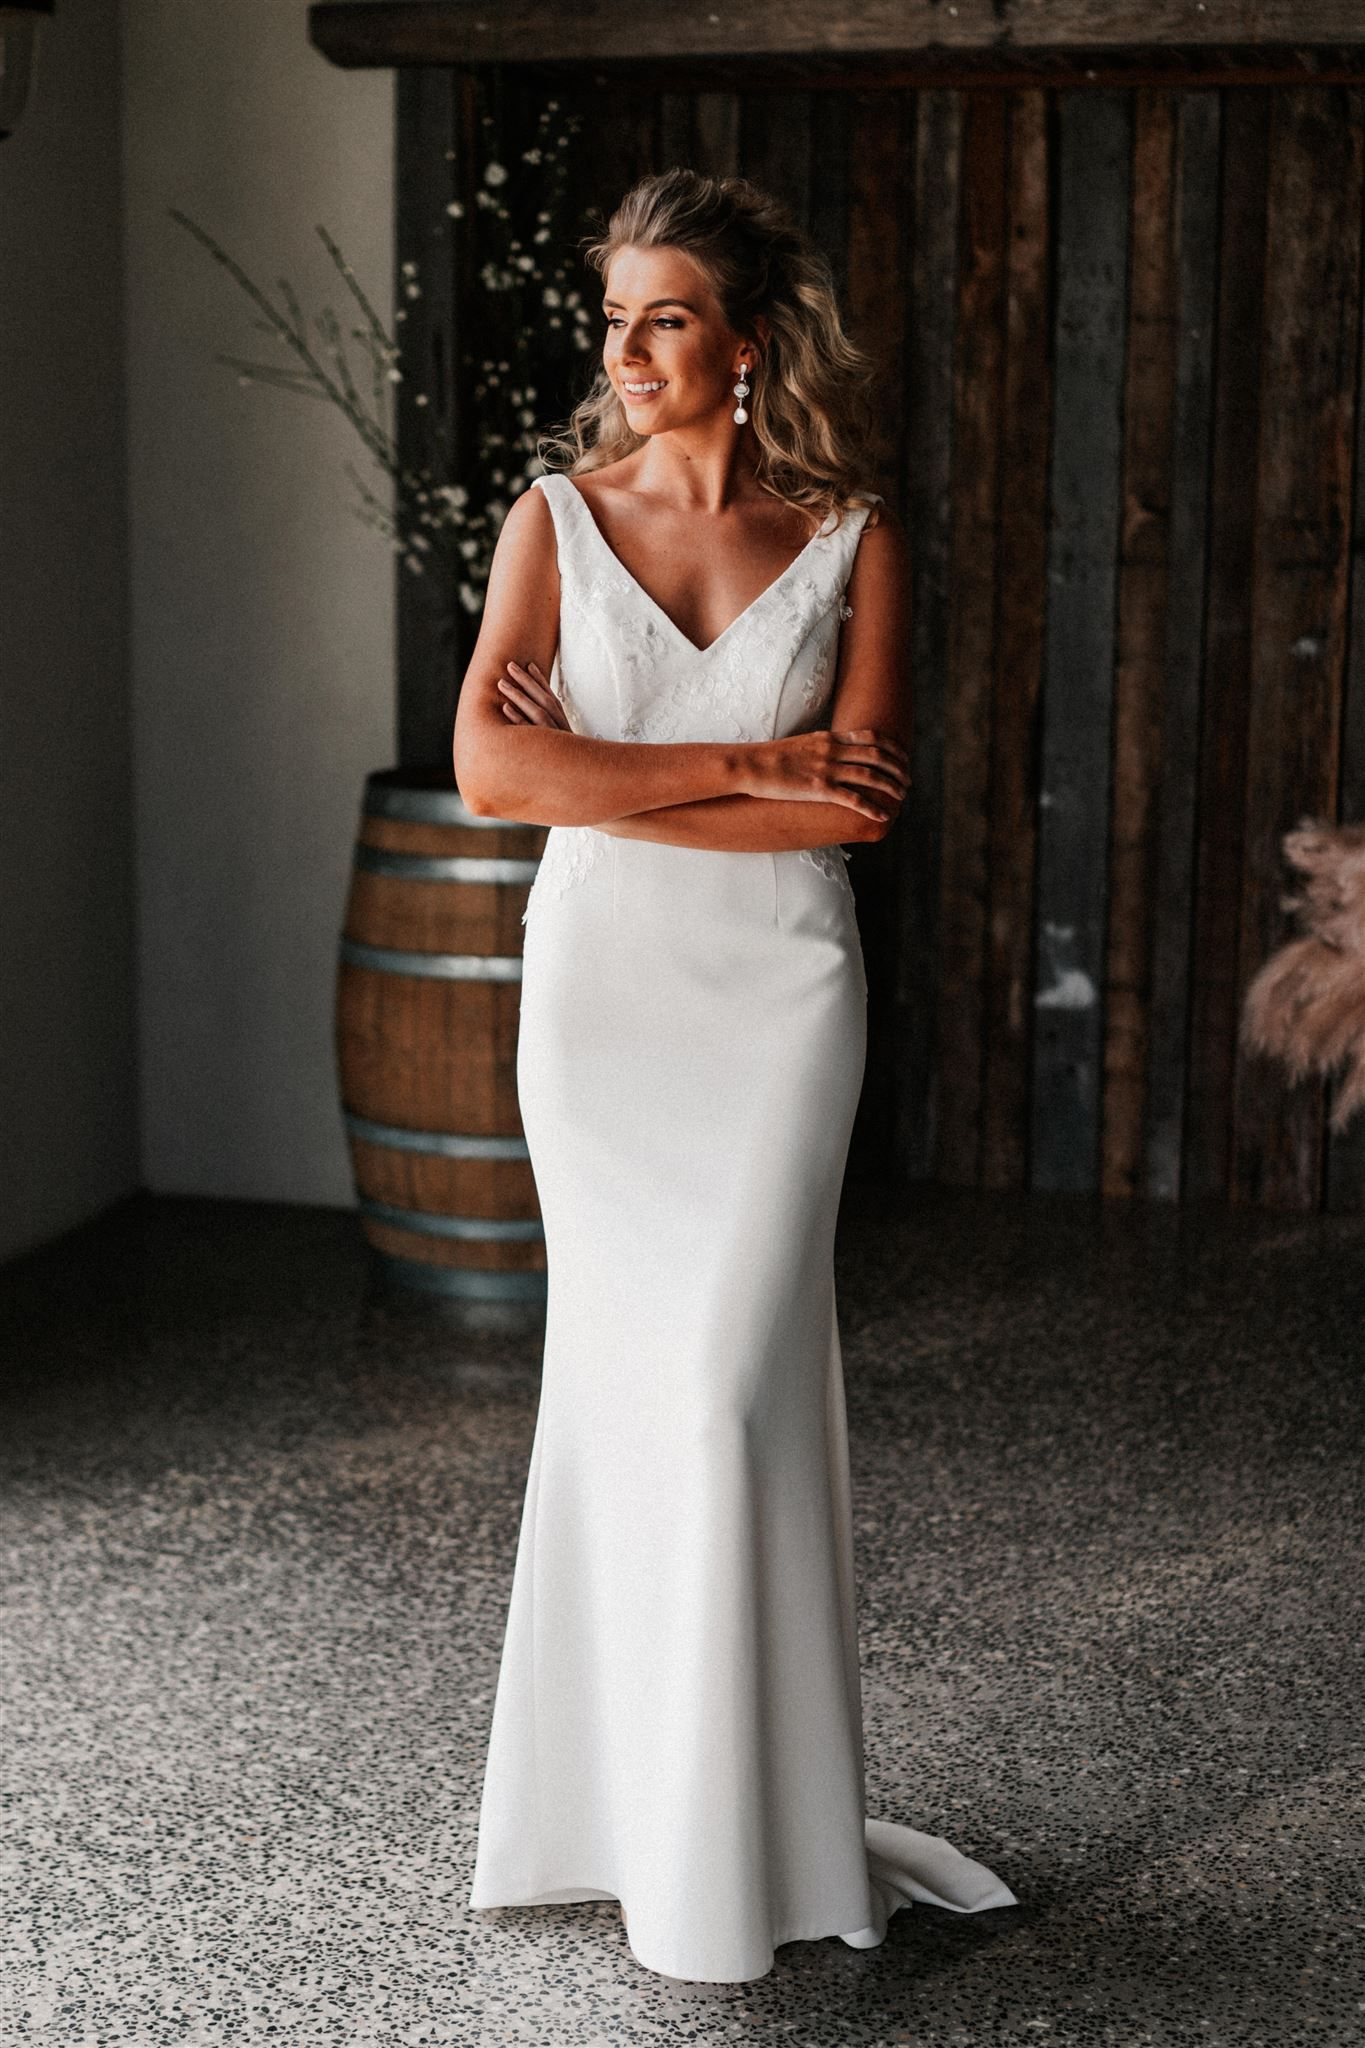 The Katrina Bertossi Brides Gown From Our Brand New Como Collection In Our St Casual Wedding Dress Australian Wedding Dress Designers Wedding Dresses Images